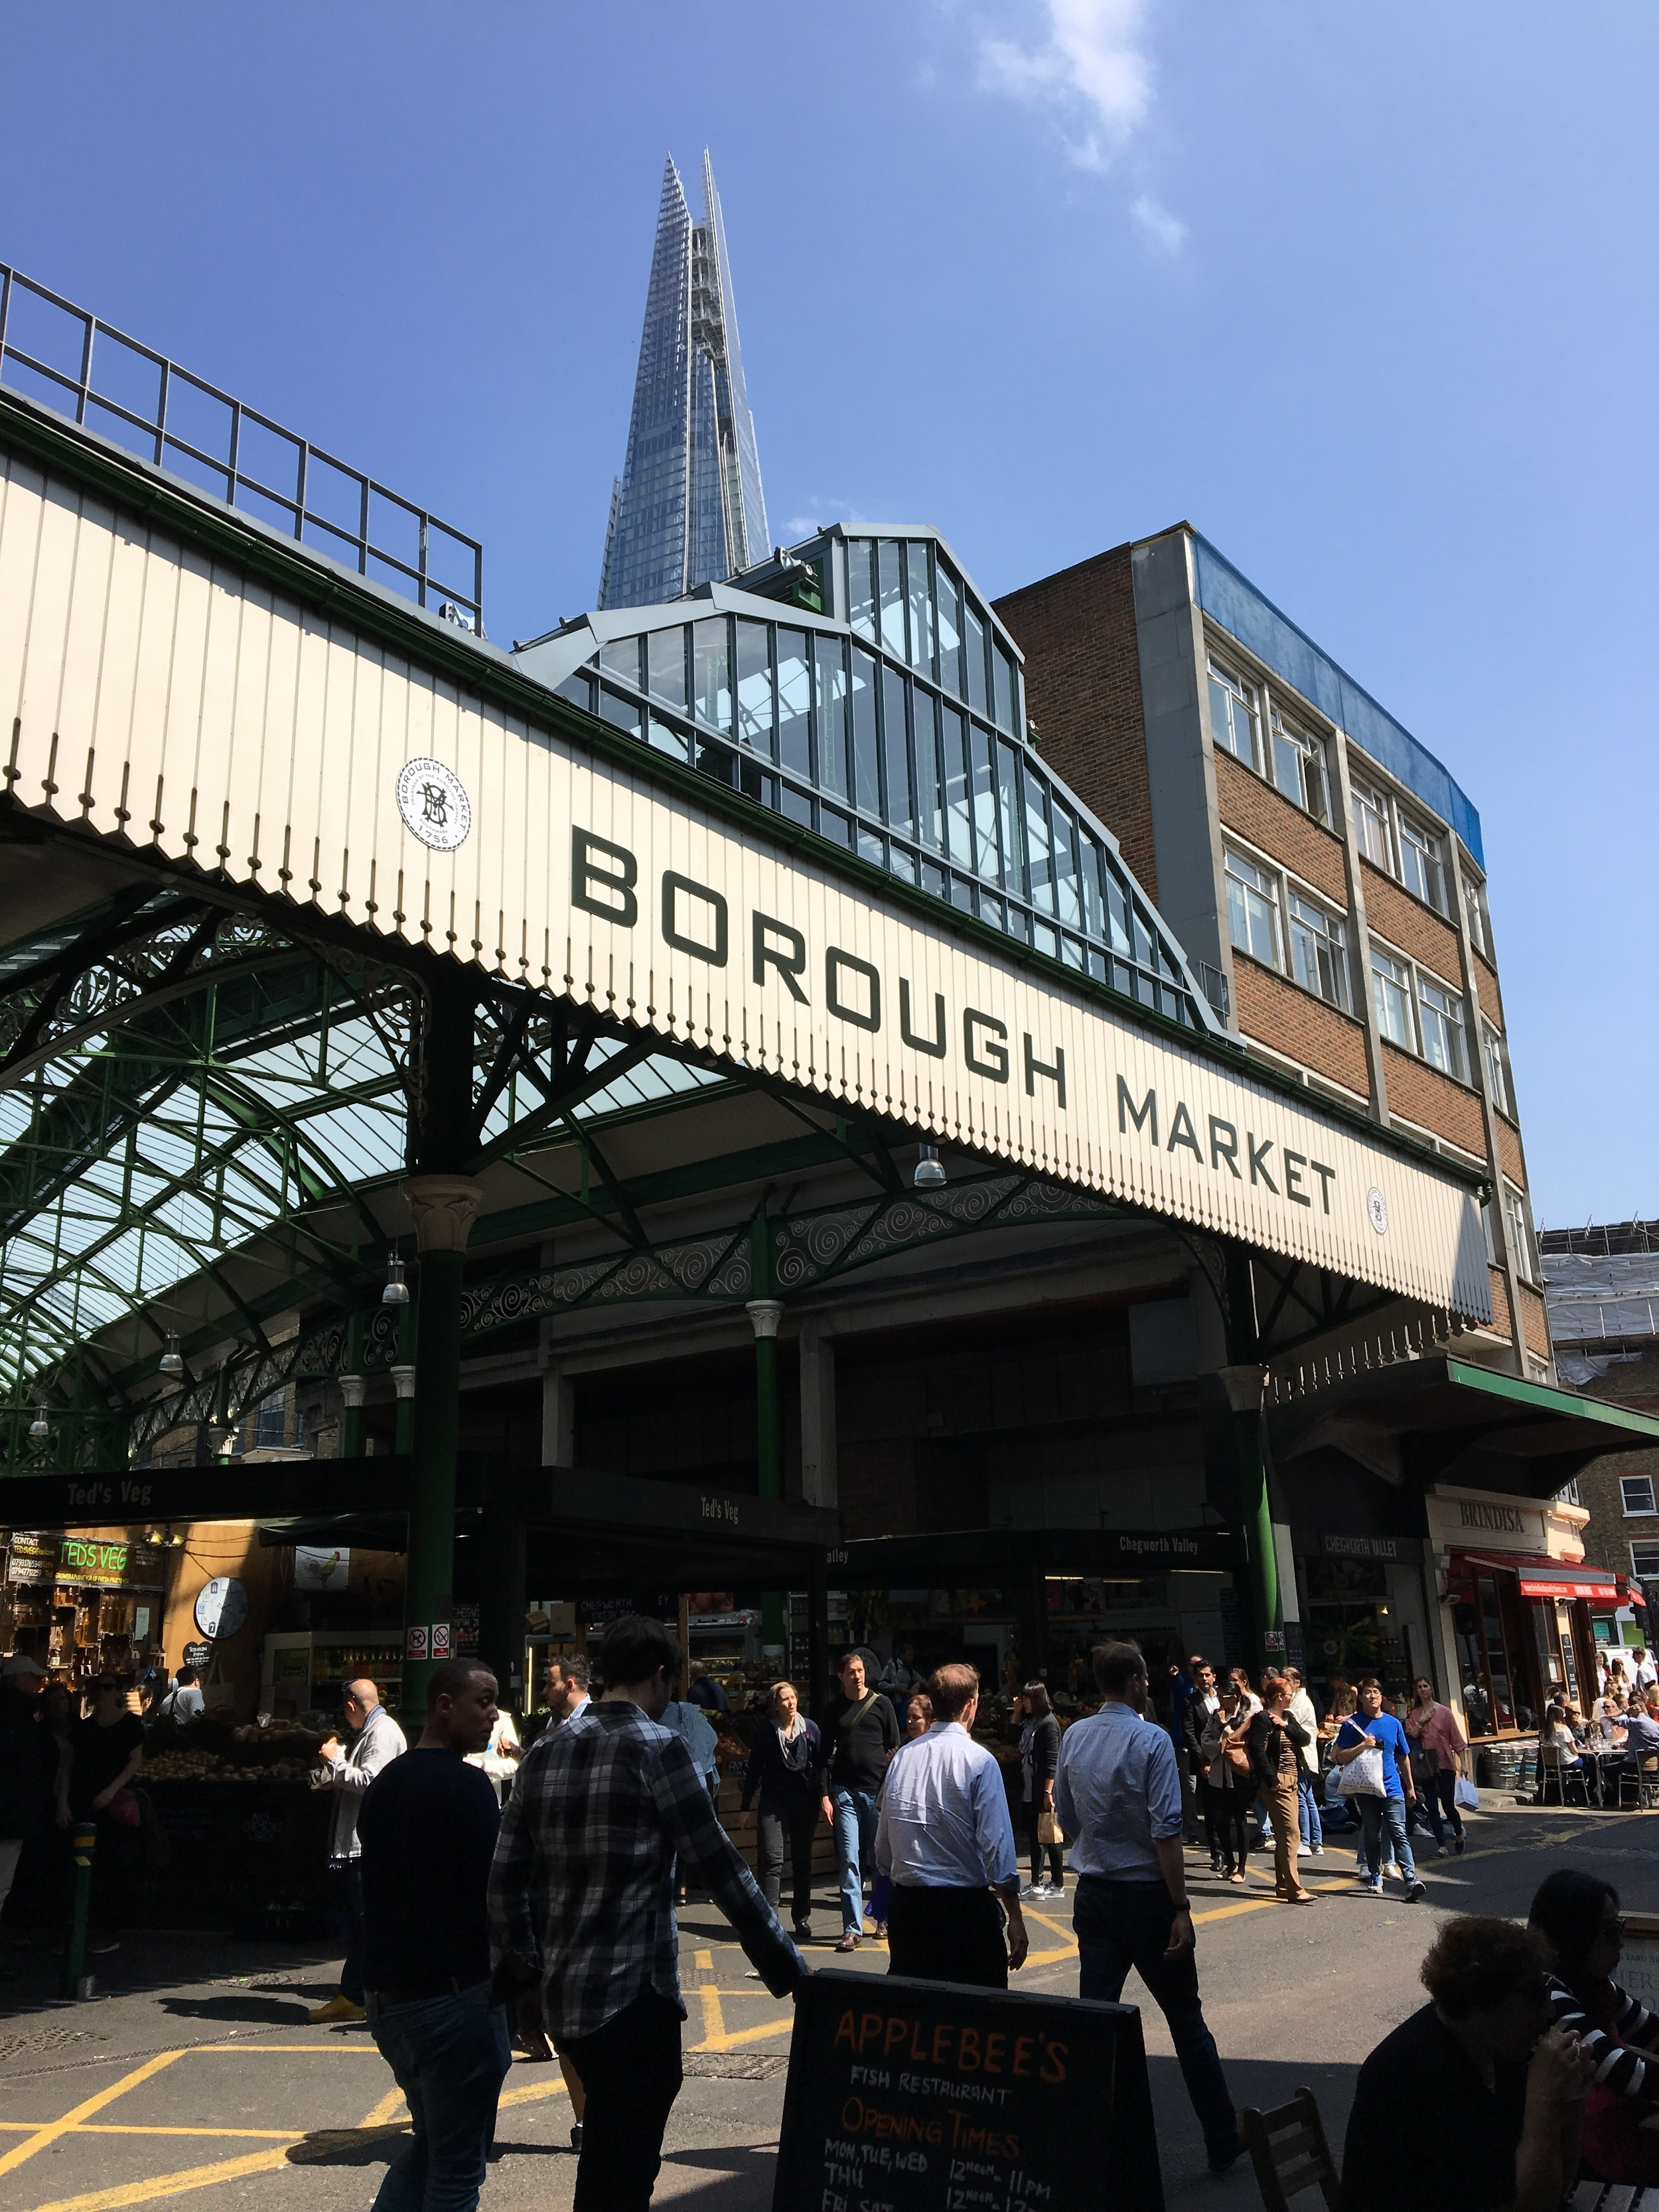 """A large covered food market in the Southwark Area, sits under another modern building known as the """"Shard"""""""